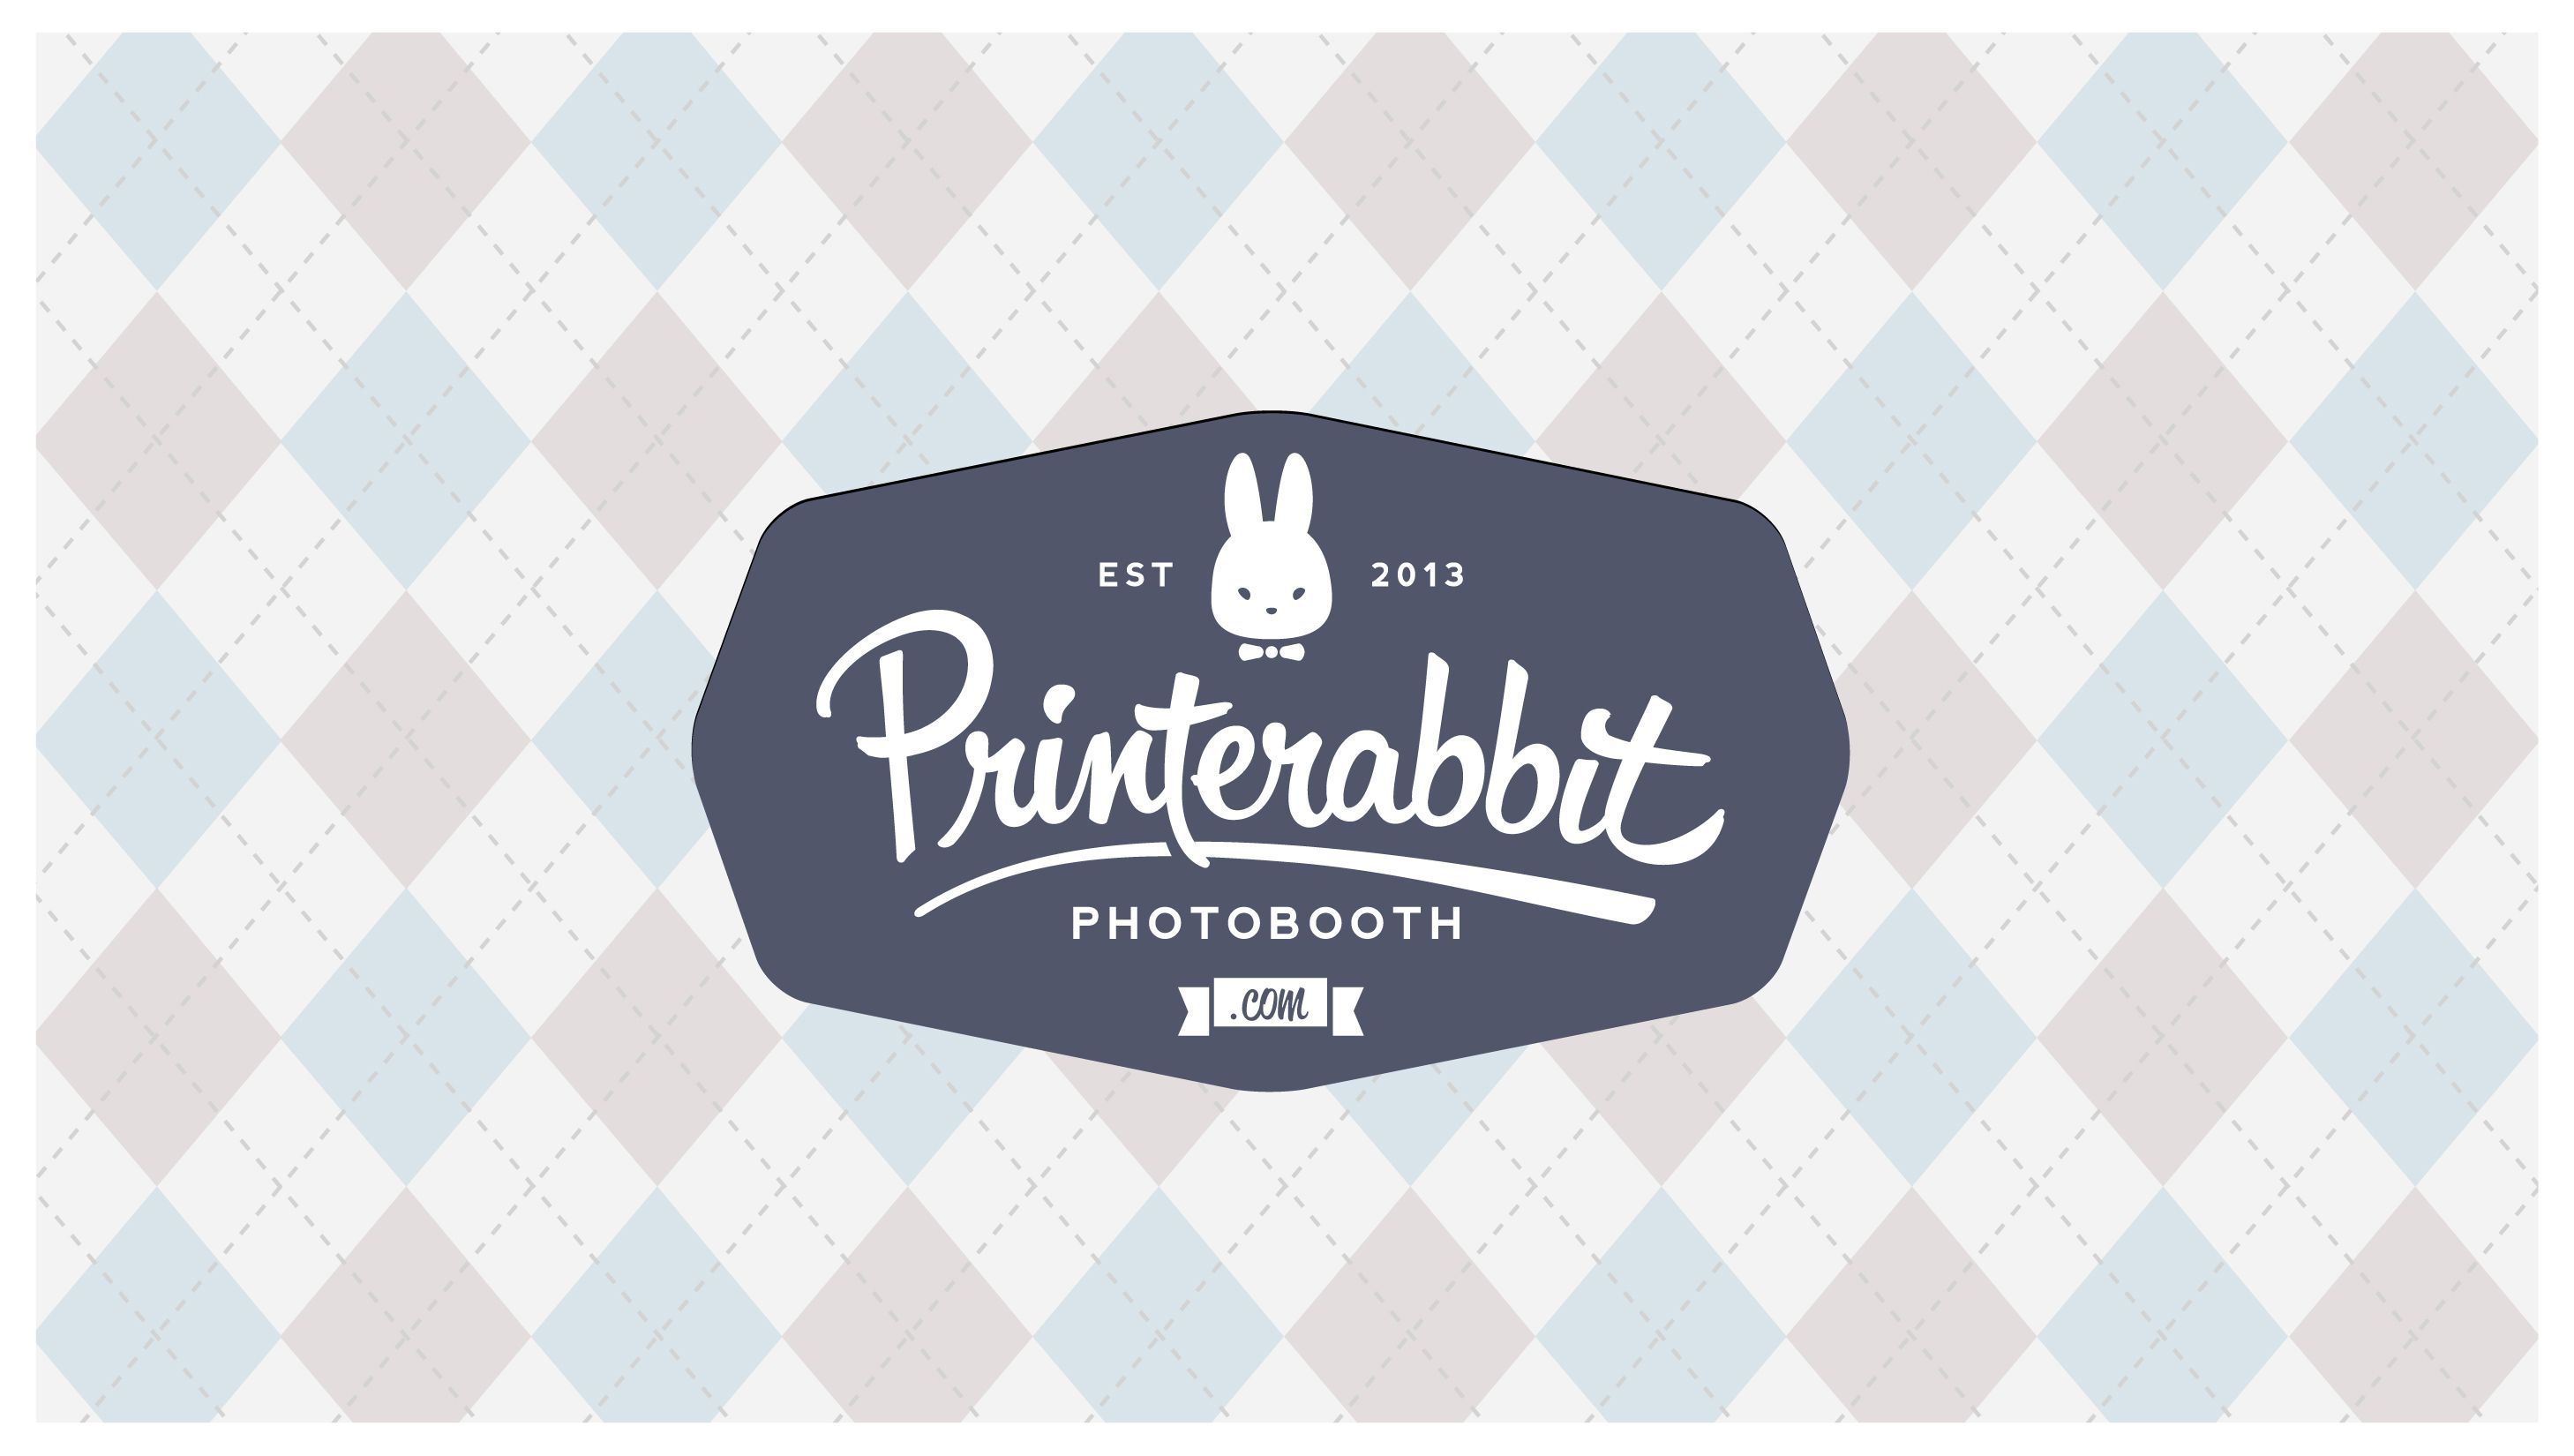 Printerabbit photobooth Logo design by DessyOngkowidjaja